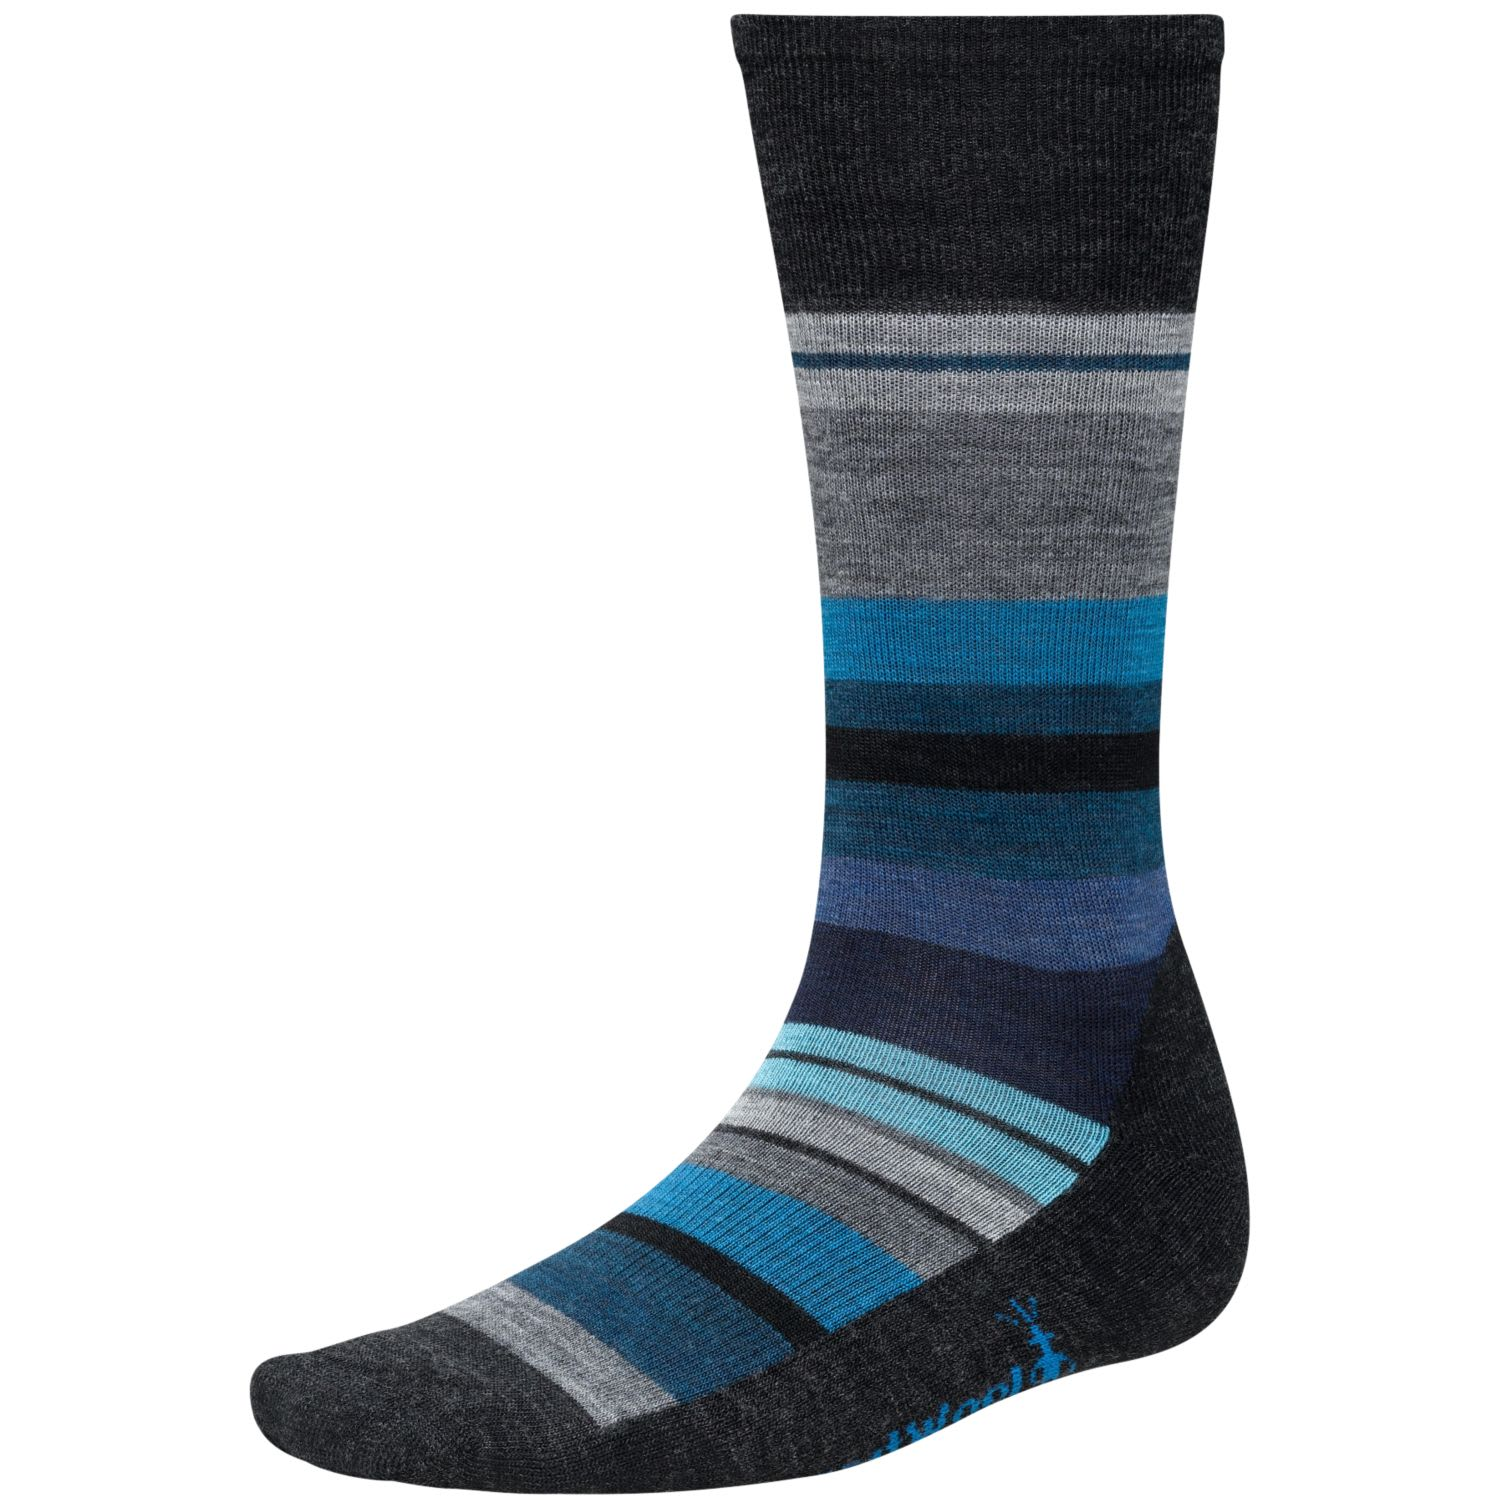 Men's Clothing, Socks and Shoes on Sale at Macy's come in a variety of styles. Shop Macy's Sale & Clearance for men's clothing, Socks & shoes today! Macy's Presents: The Edit- A curated mix of fashion and inspiration Check It Out. Free Shipping with $75 purchase + Free Store Pickup. Contiguous US.